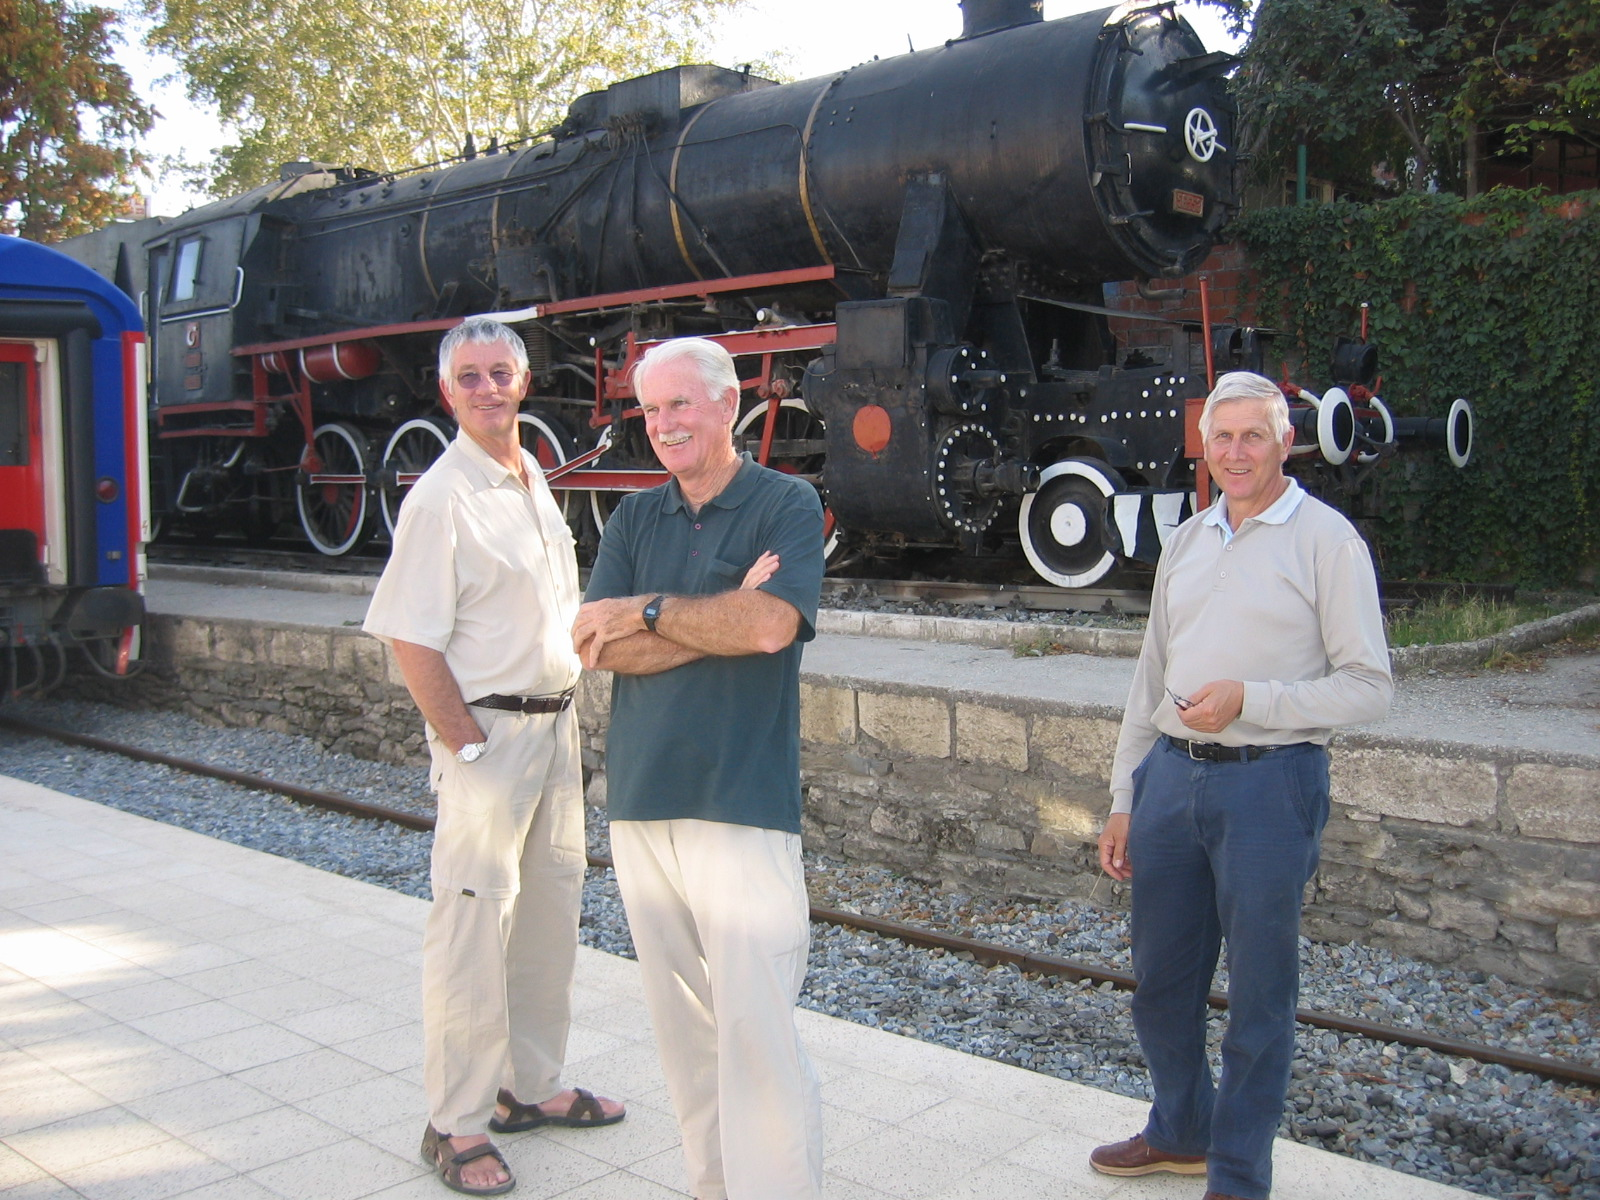 Barry, Robert, and Richard looking handsome in front of an old train